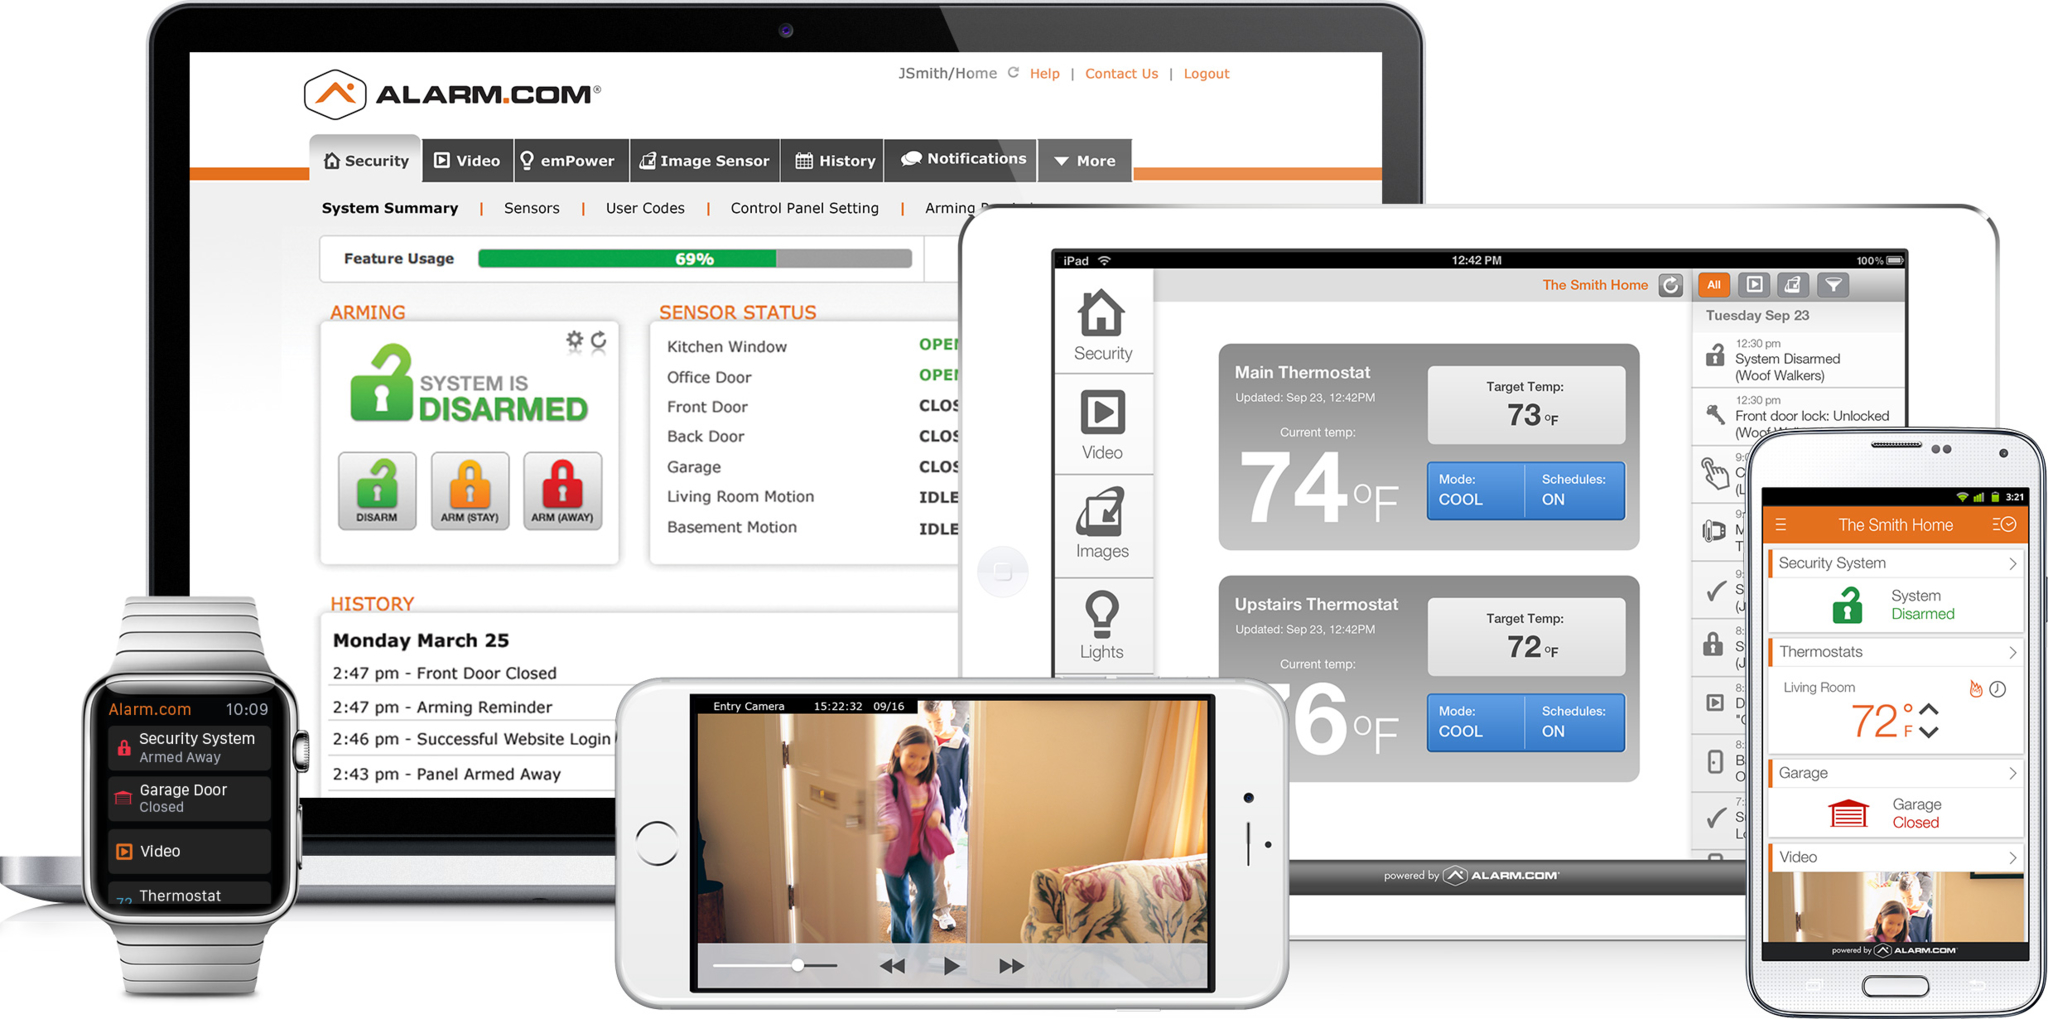 Alarm.com with an Alarm.com-enabled security system, you can monitor and control your home or busine Best Security Okanagan Kelowna (250)826-8395